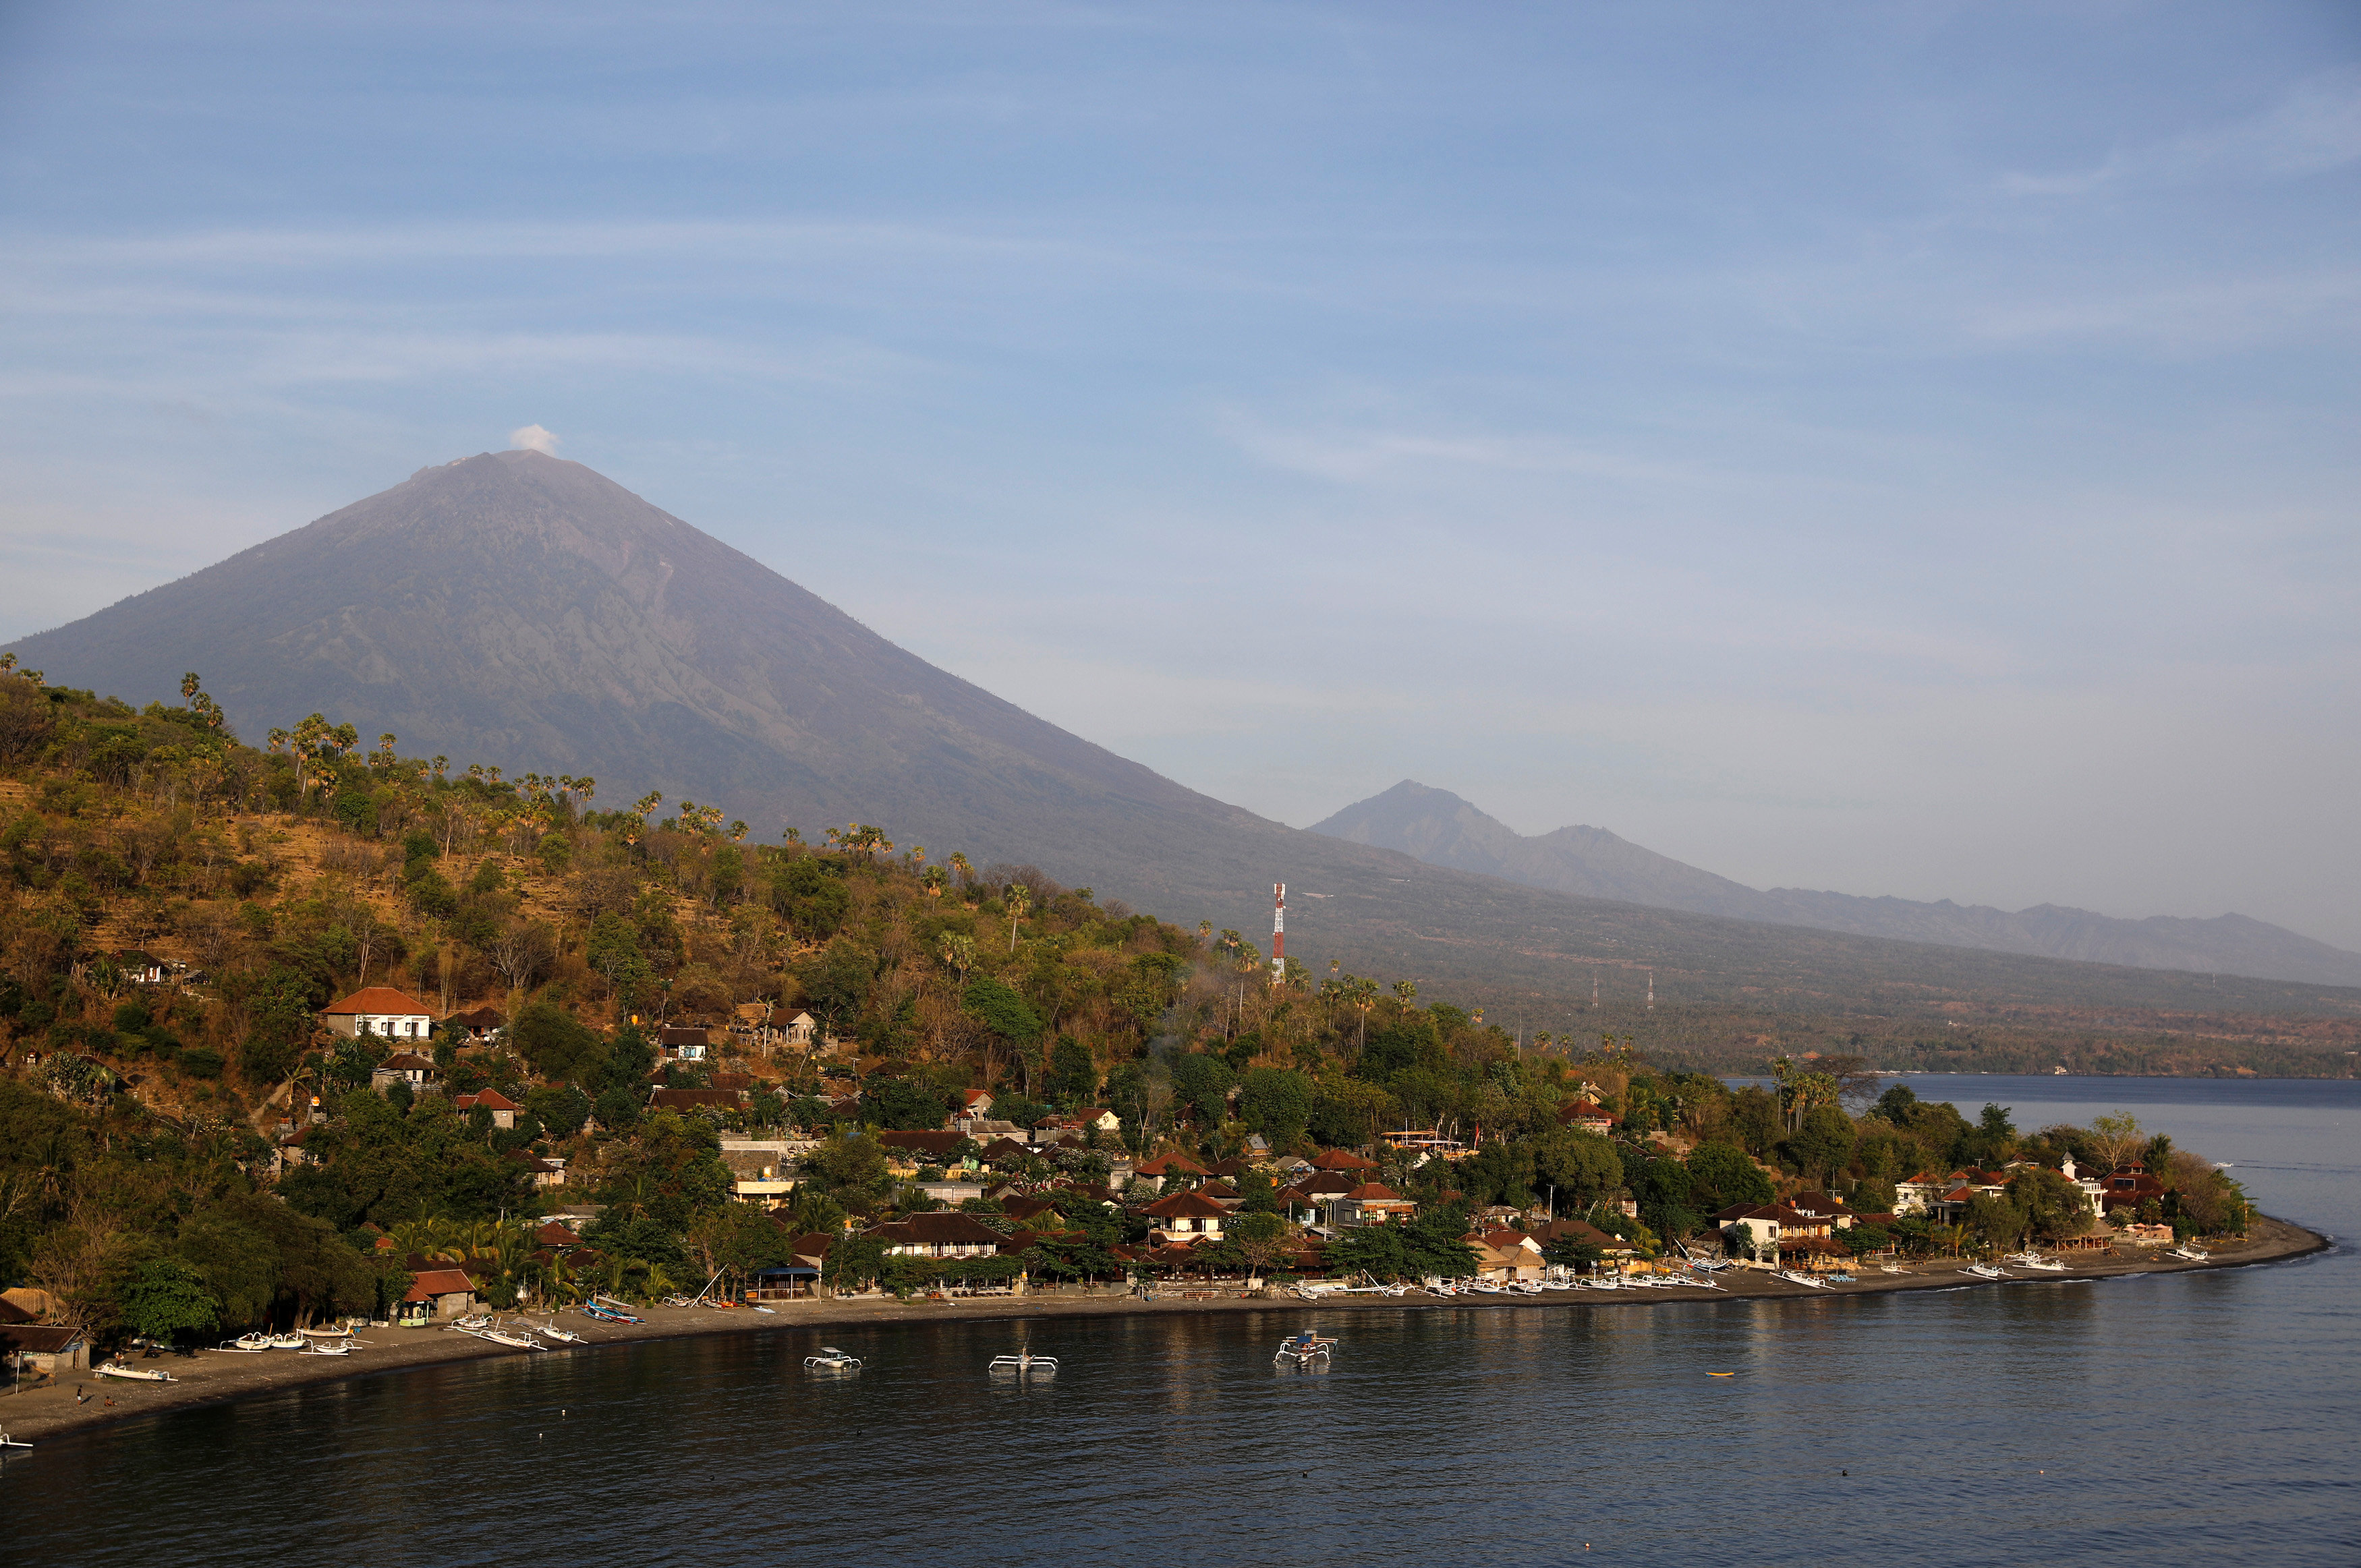 Jemeluk beach is seen some 15 km away from Mount Agung, a volcano on the highest alert level, in Amed on the resort island of Bali, Indonesia October 2, 2017. REUTERS/Darren Whiteside